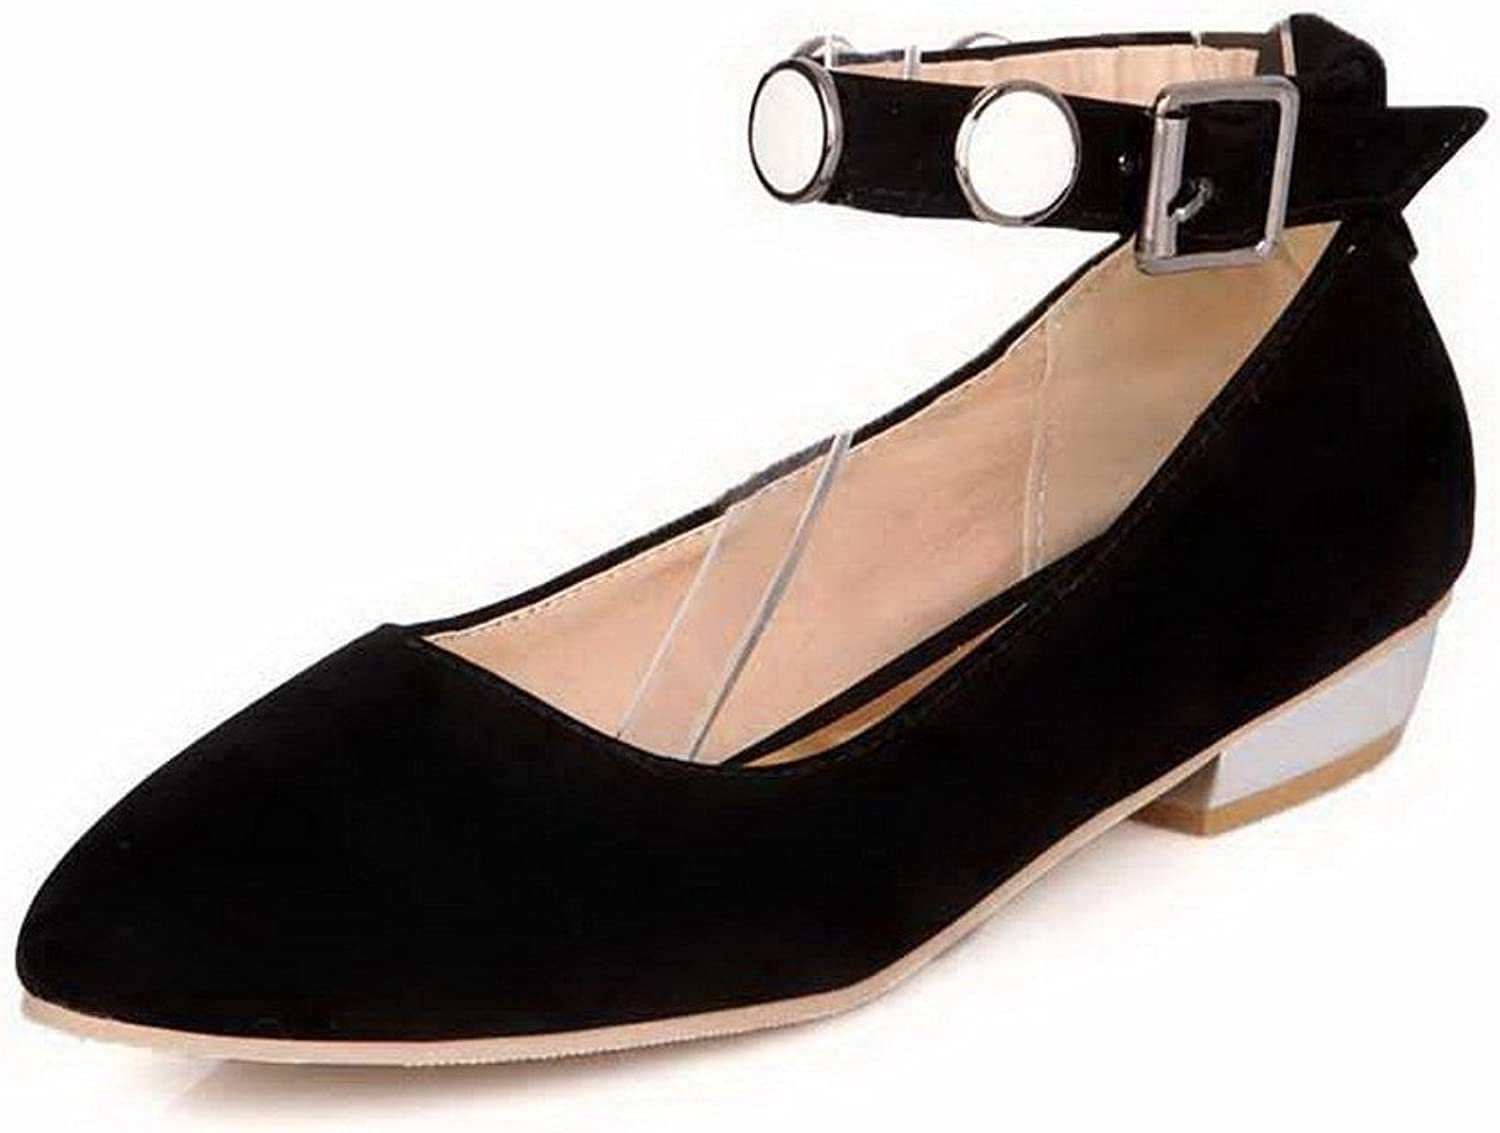 AllhqFashion Women's Low Heels Solid Buckle Microfiber Pointed Closed Toe Pumps-shoes